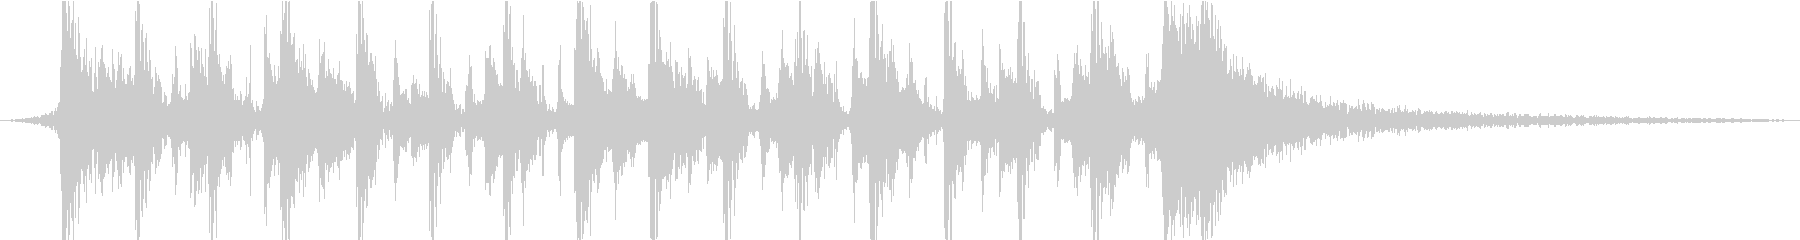 Cheer up bright funky pop's unreproduced waveform